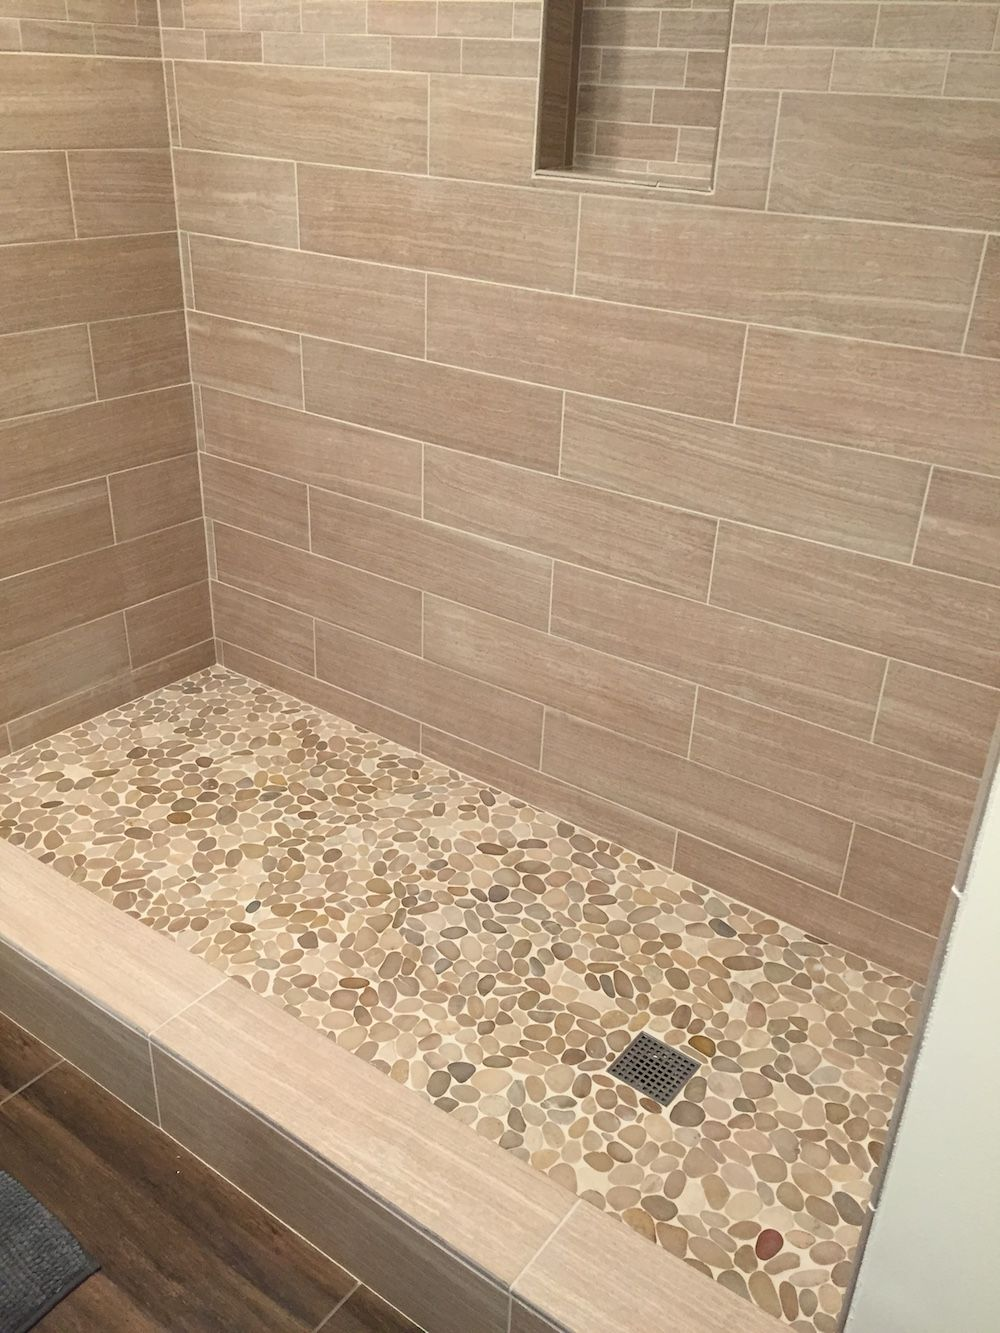 Showing Tiling Cost Factors With Images Bathroom Remodel Shower Pebble Tile Shower Pebble Tile Shower Floor